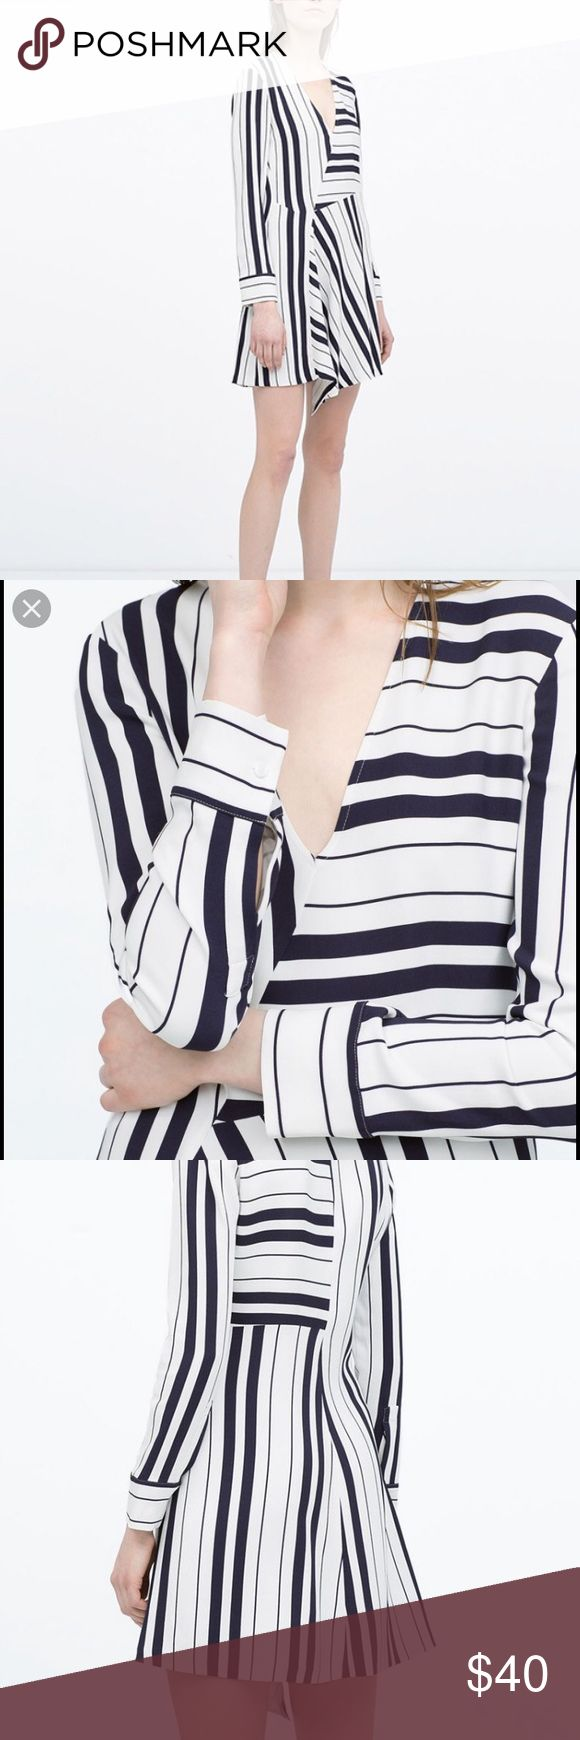 ZARA Dress Navy White Longsleeve Dress size Small ZARA Navy White Longsleeve dress. Asymmetrical hem. Abstract all over nautical stripe. Cuffs at sleeve. Fits true to size. Will accept reasonable offers but no trades. Zara Dresses Long Sleeve